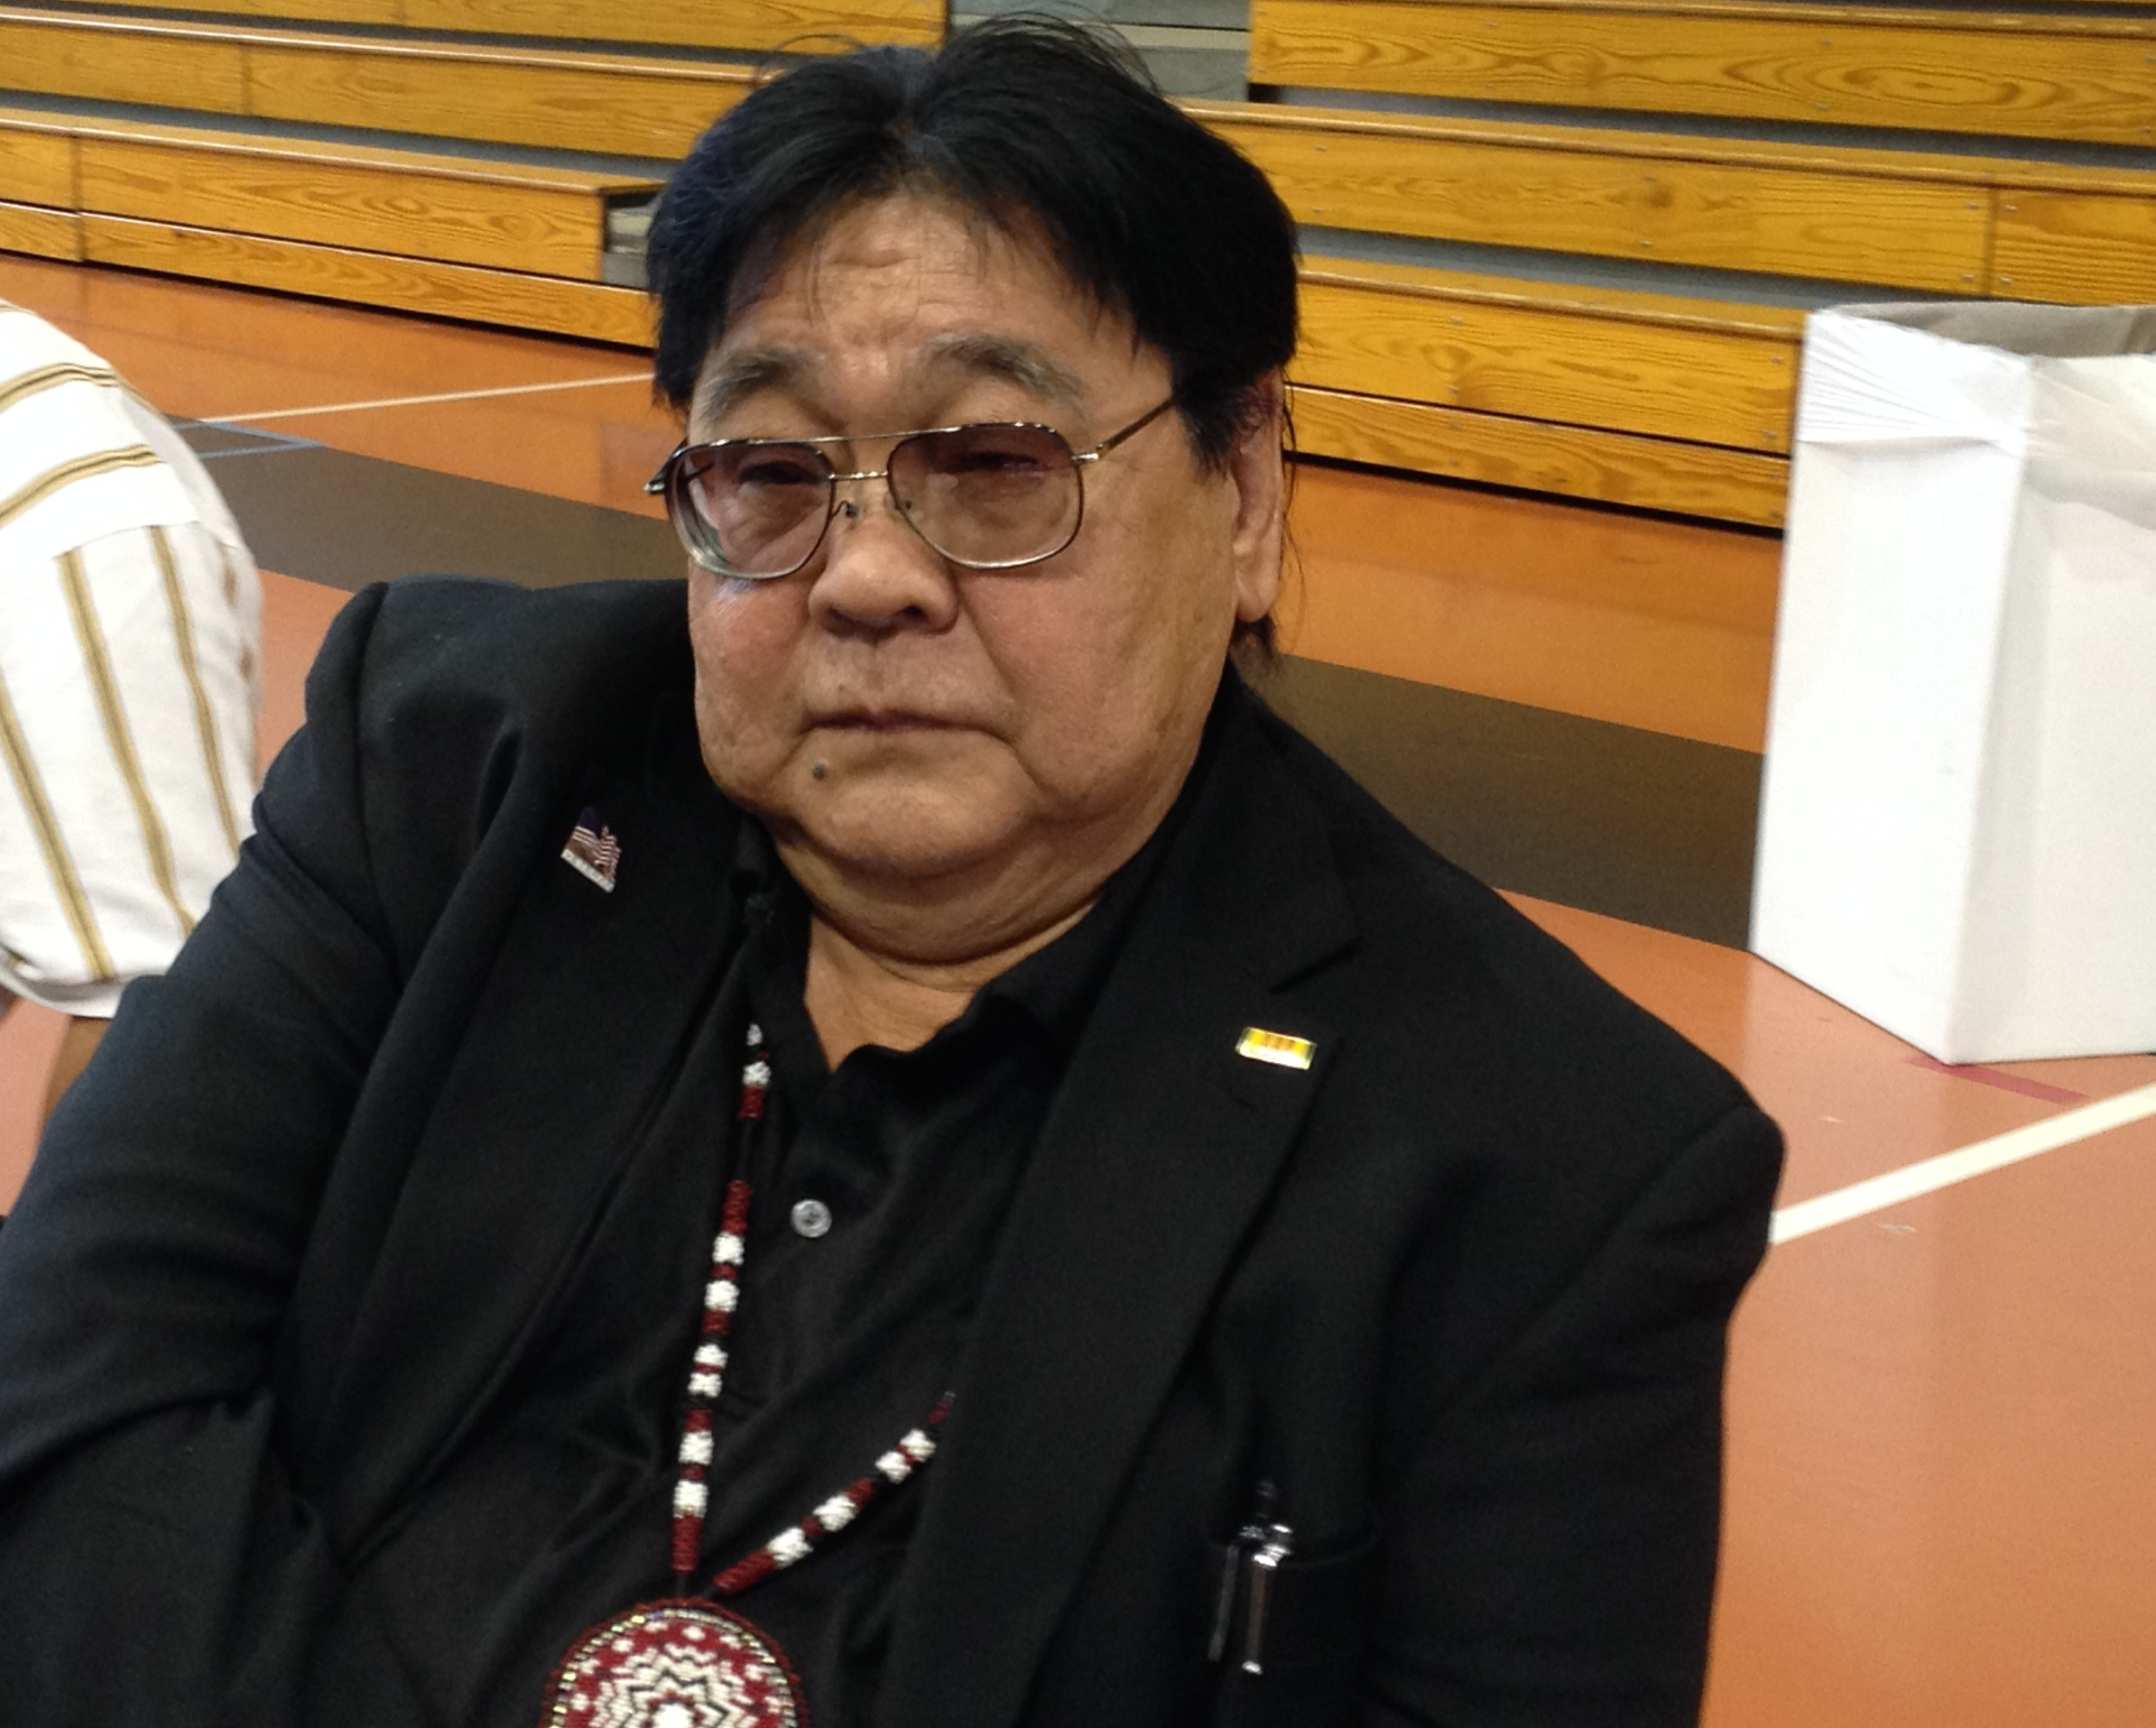 Caption: Red Lake Nation Chairman Darrell Seki recently gave his first State of the Nation address., Credit: Melissa Townsend